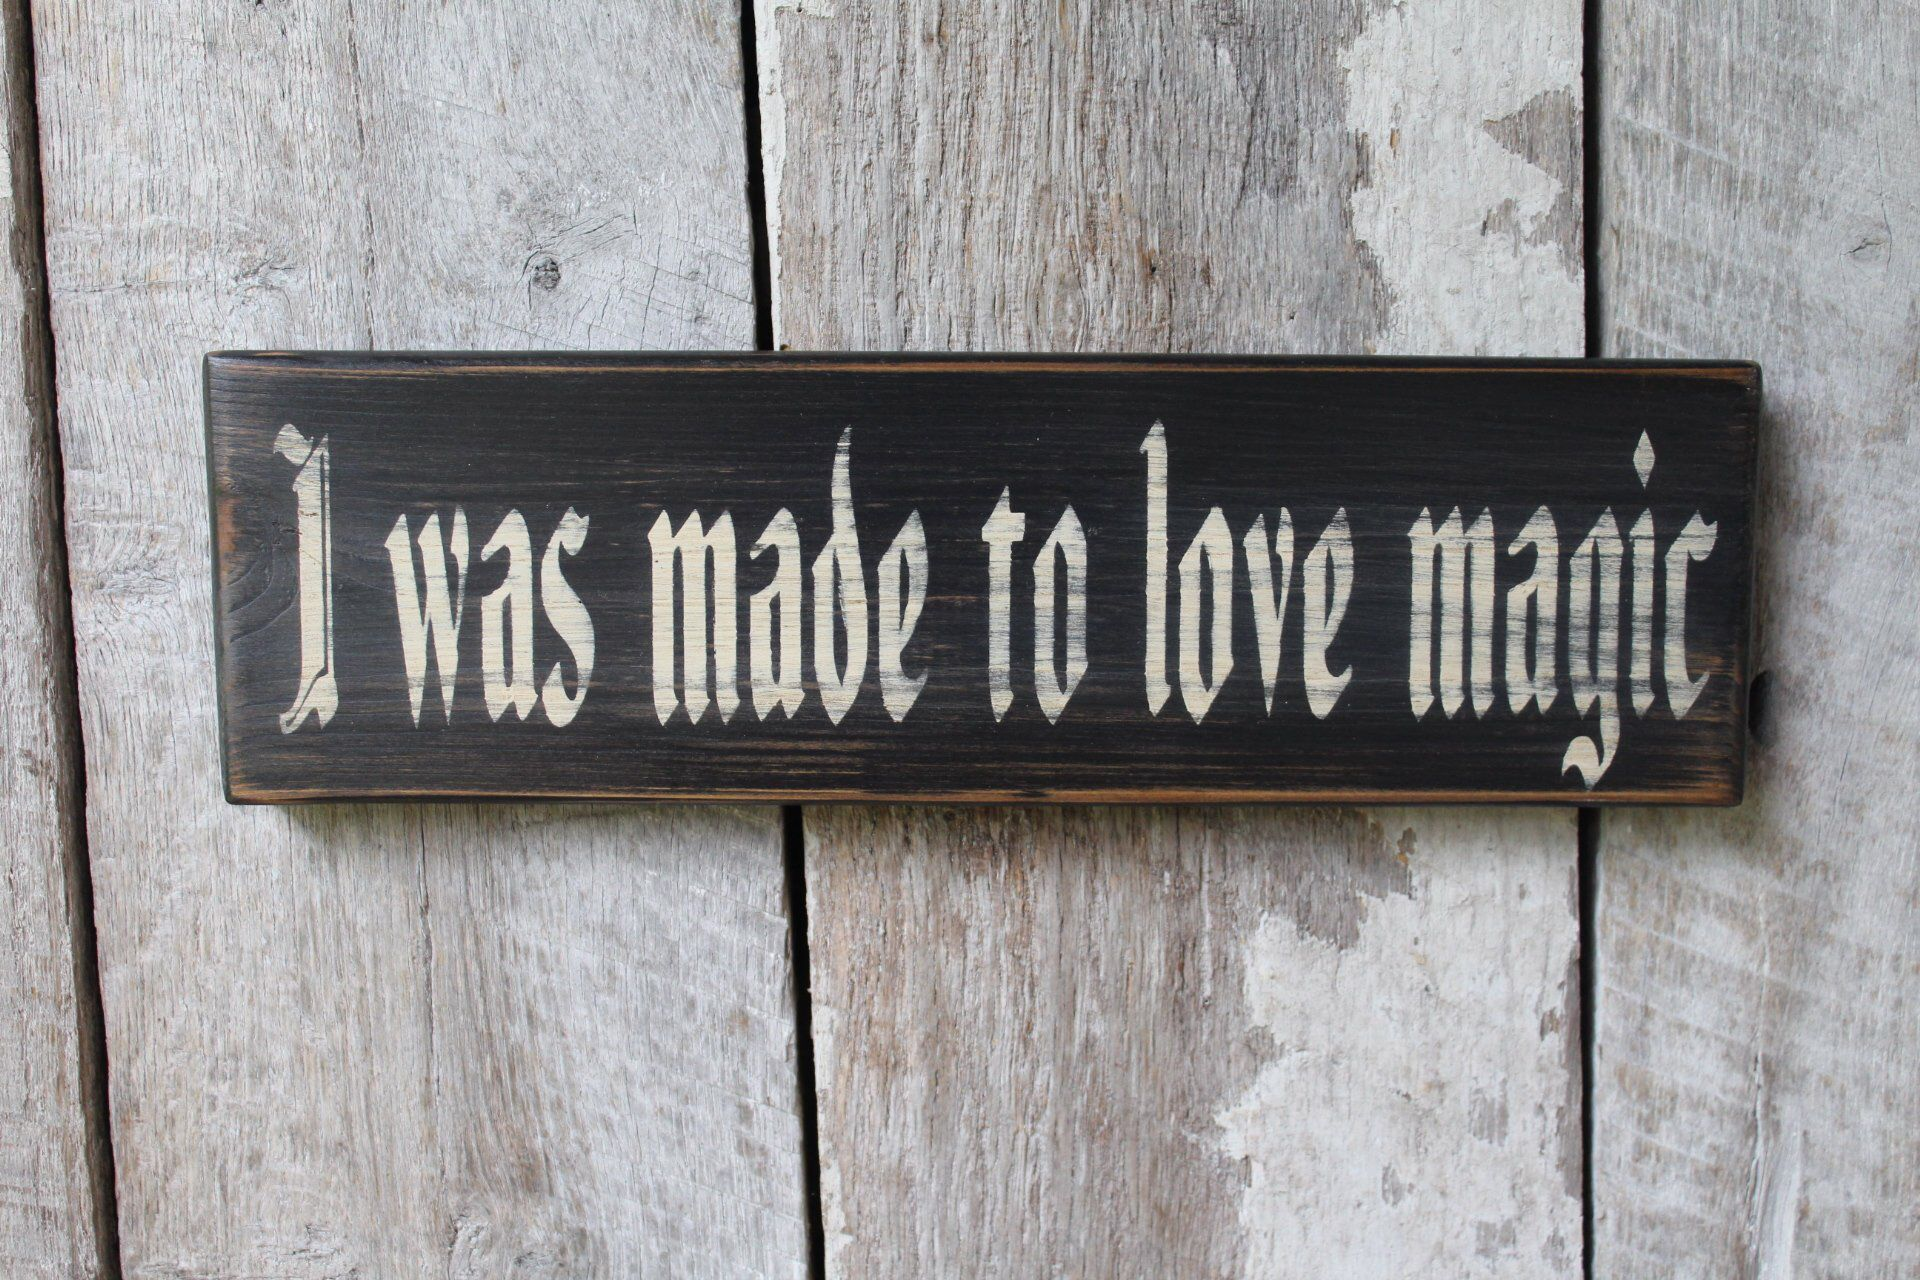 I was Made To Love Magic Wood Sign Boho Decor Dorm Decor Wiccan Wicca Witch Decor Gypsy Art babe cave hippie decor party room decor